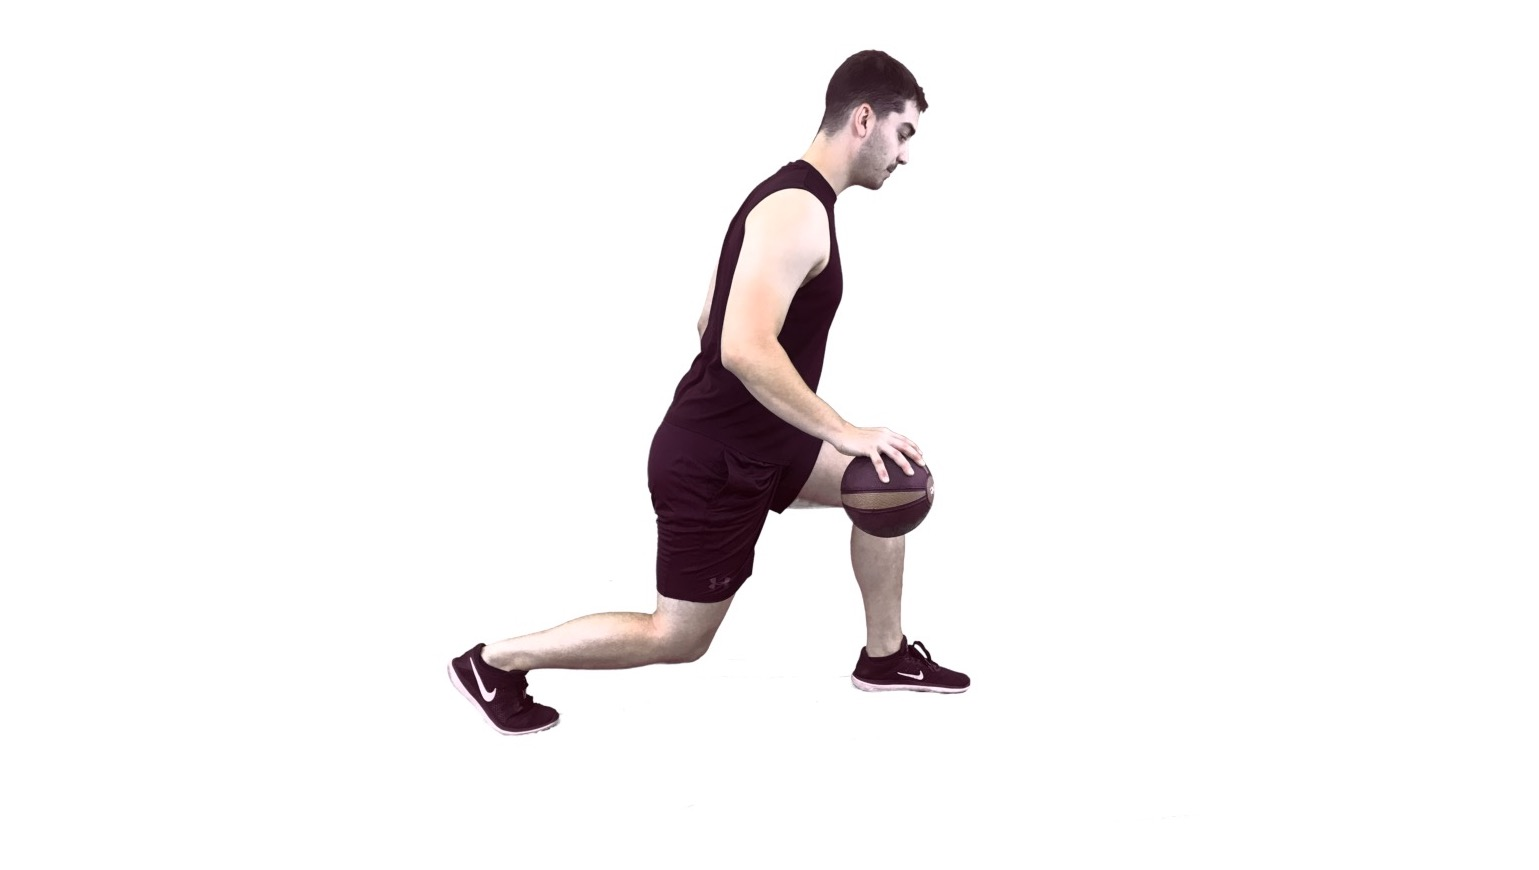 lunge with ball sagittal view 2.jpg